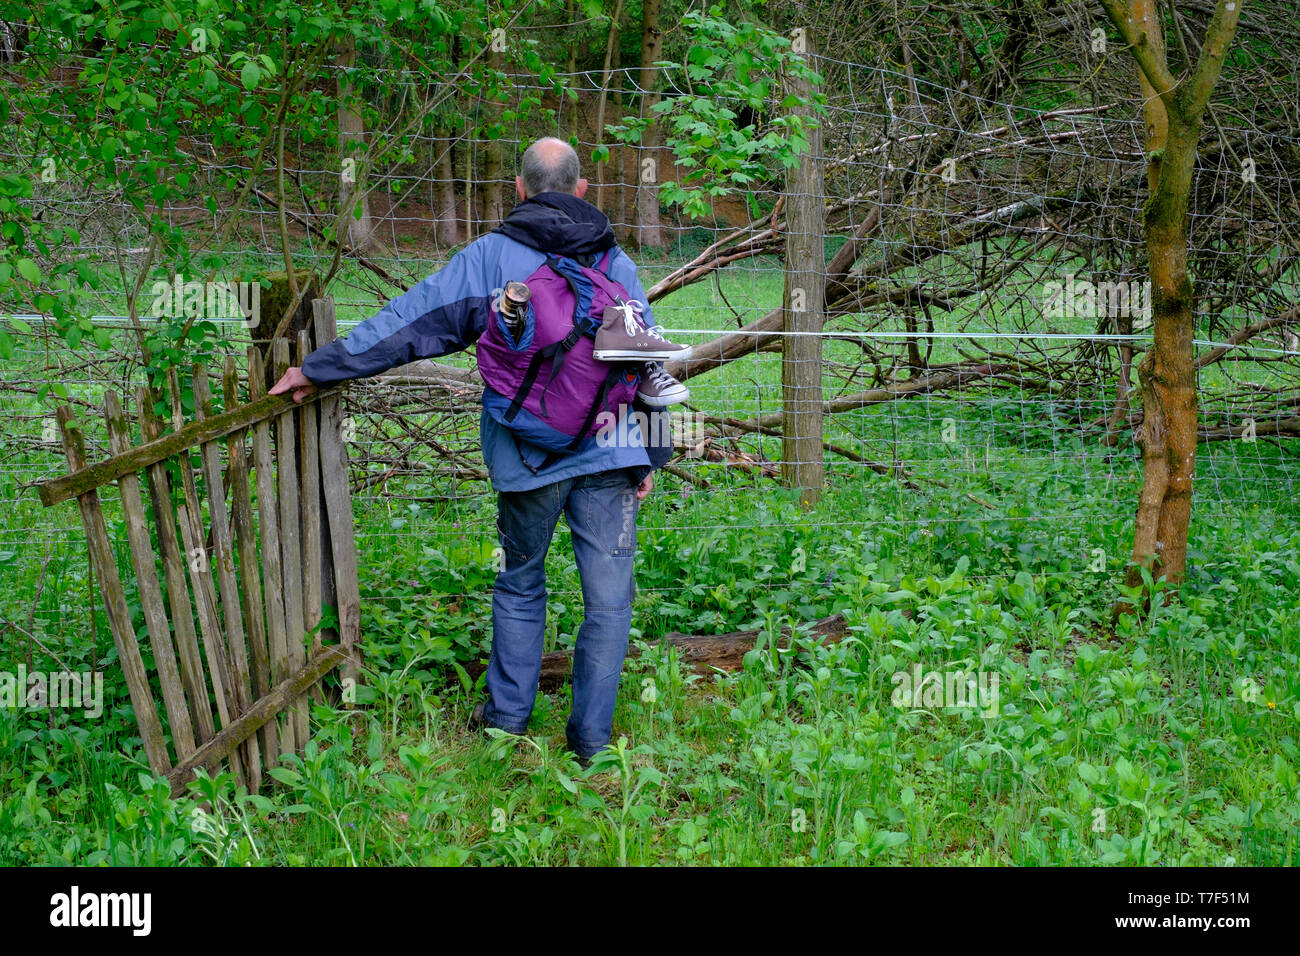 older man backpacking in countryside standing by old wooden gate and confronted by anti deer and electric fences blocking his way zala county hungary Stock Photo